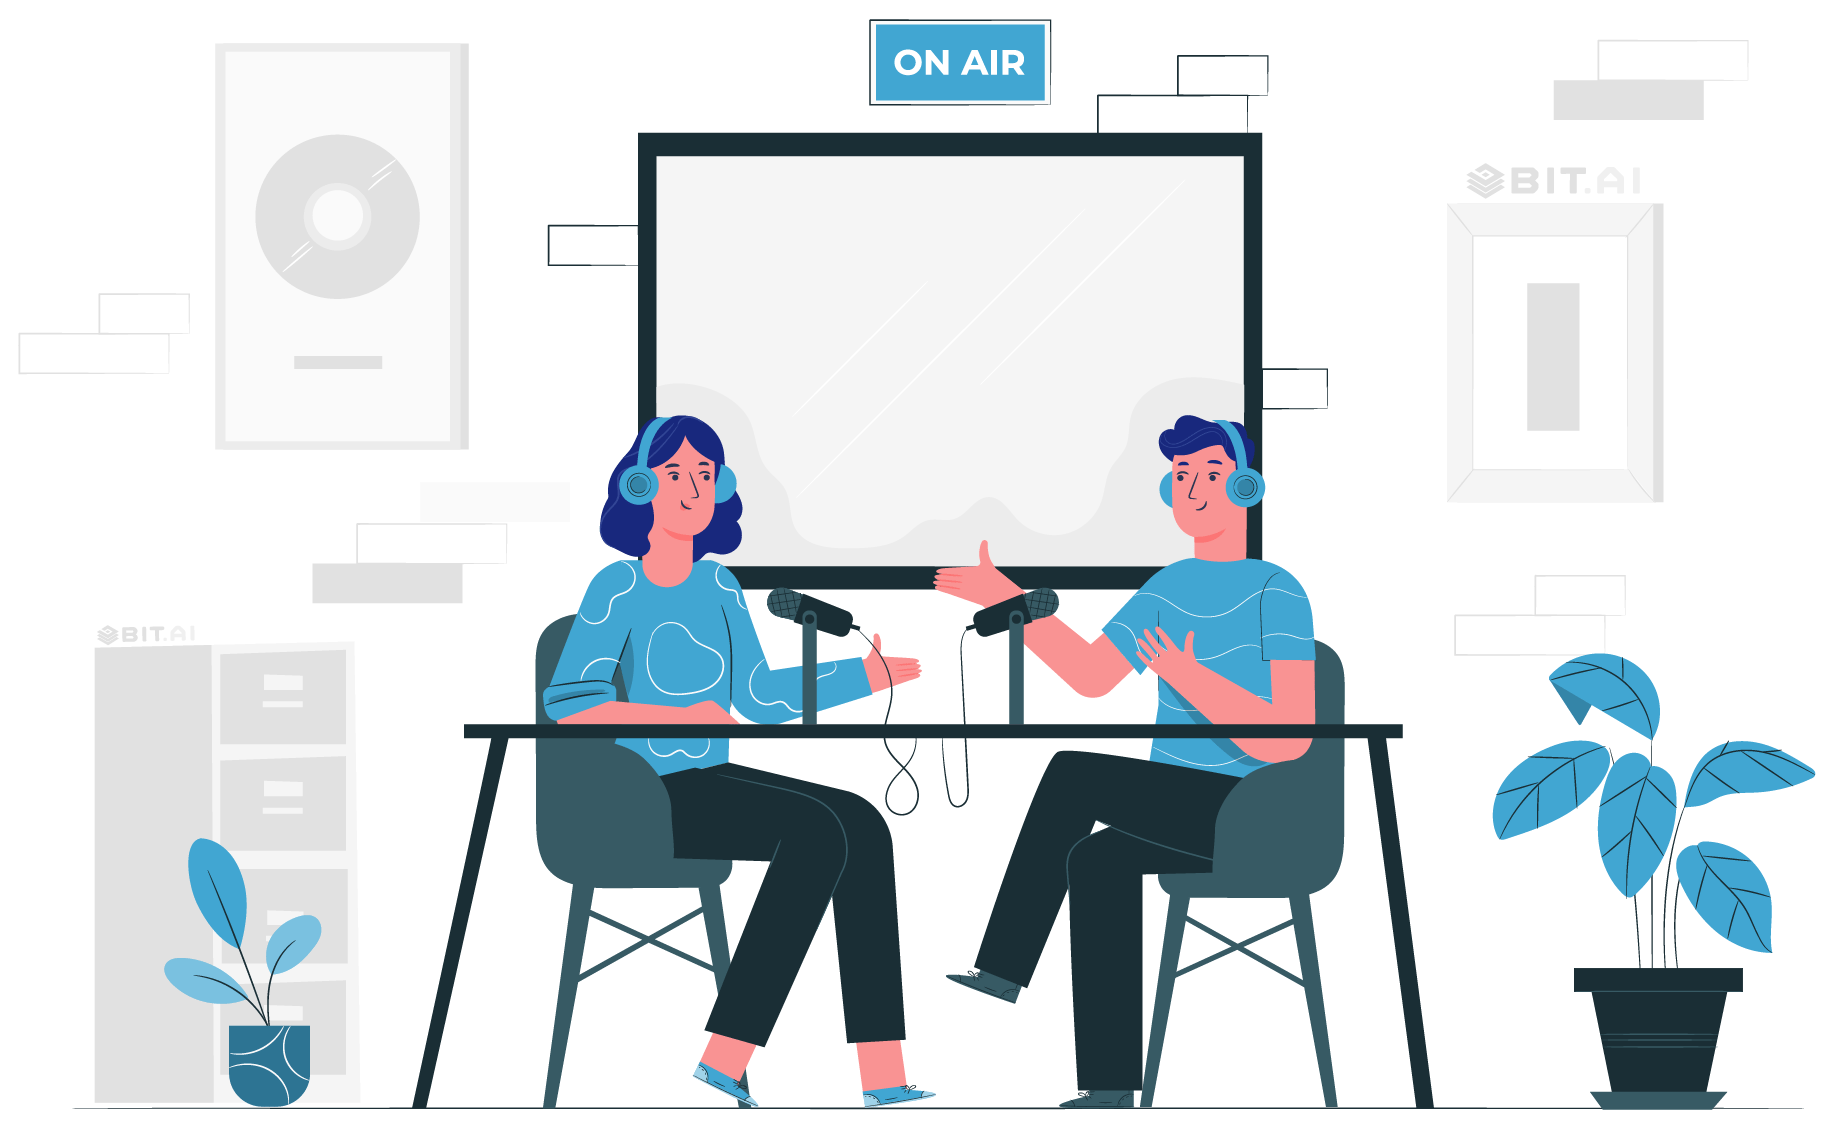 Podcasting as an online business idea